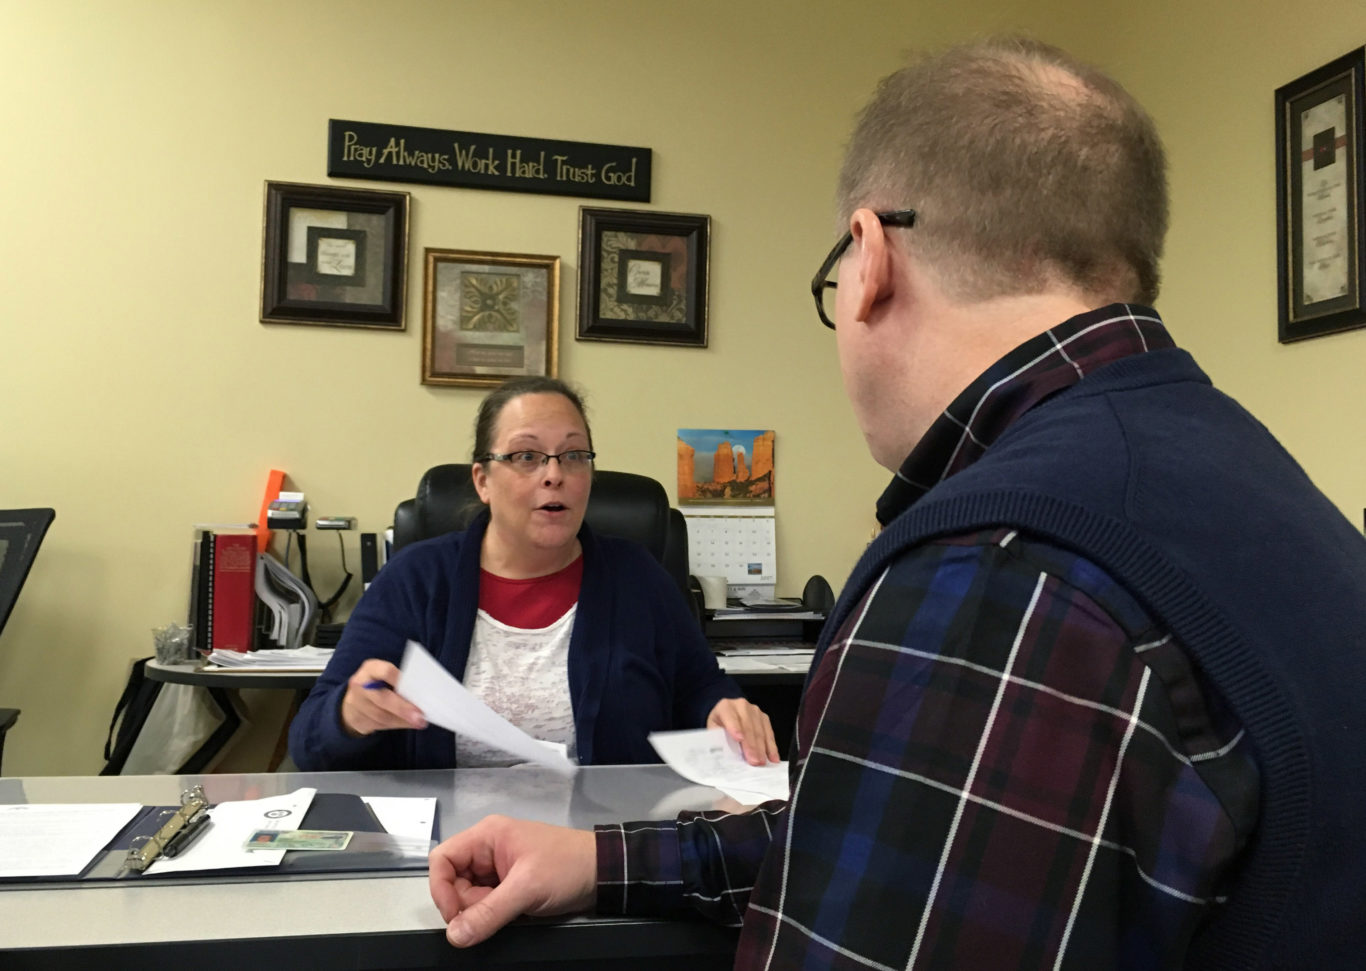 Kim Davis watched David Ermold file his candidacy for Rowan County clerk